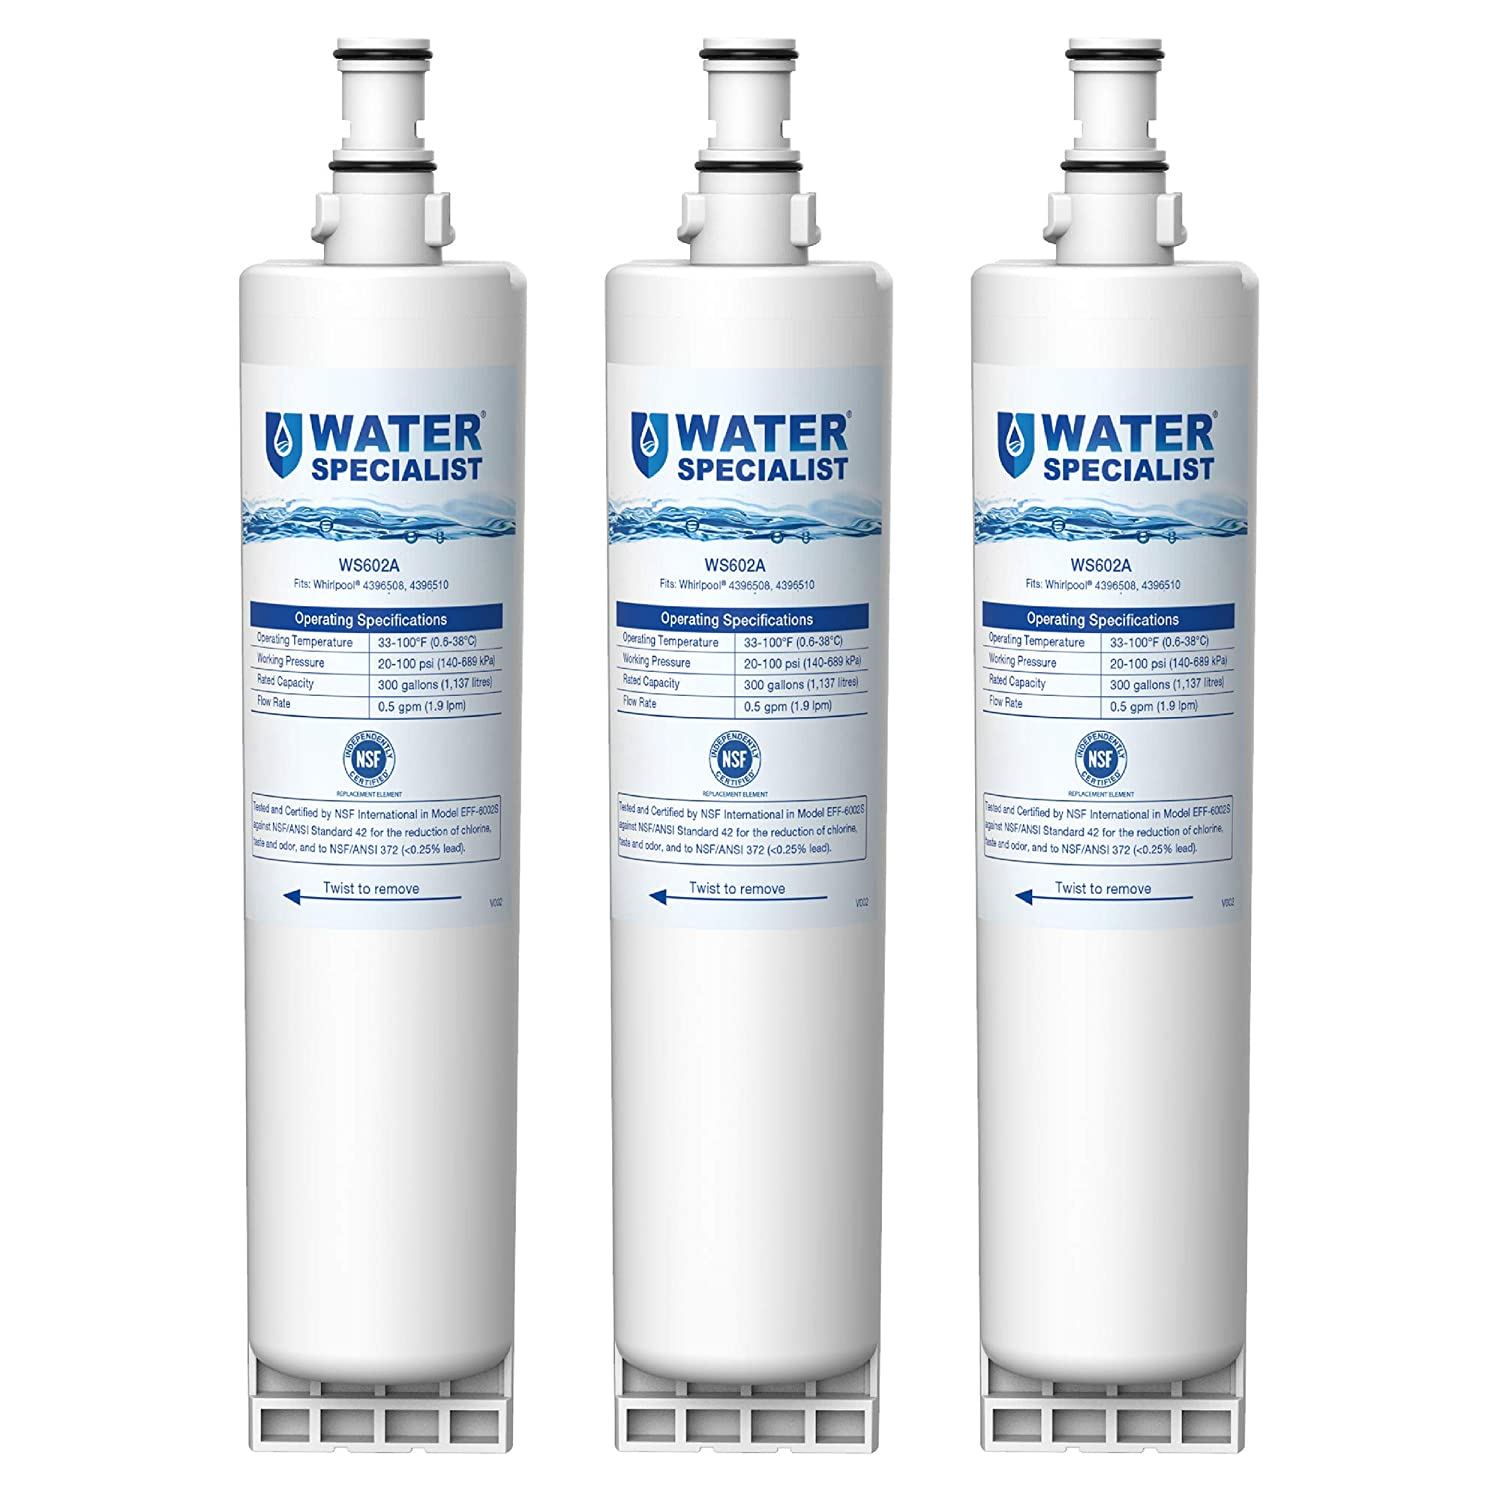 Waterspecialist 4396508 Refrigerator Water Filter, Replacement for Whirlpool EDR5RXD1, EveryDrop Filter 5, PUR W10186668, NLC240V, 4396510, 4396508P, 4392857, WF-4396508, Kenmore 46-9010 (Pack of 3)